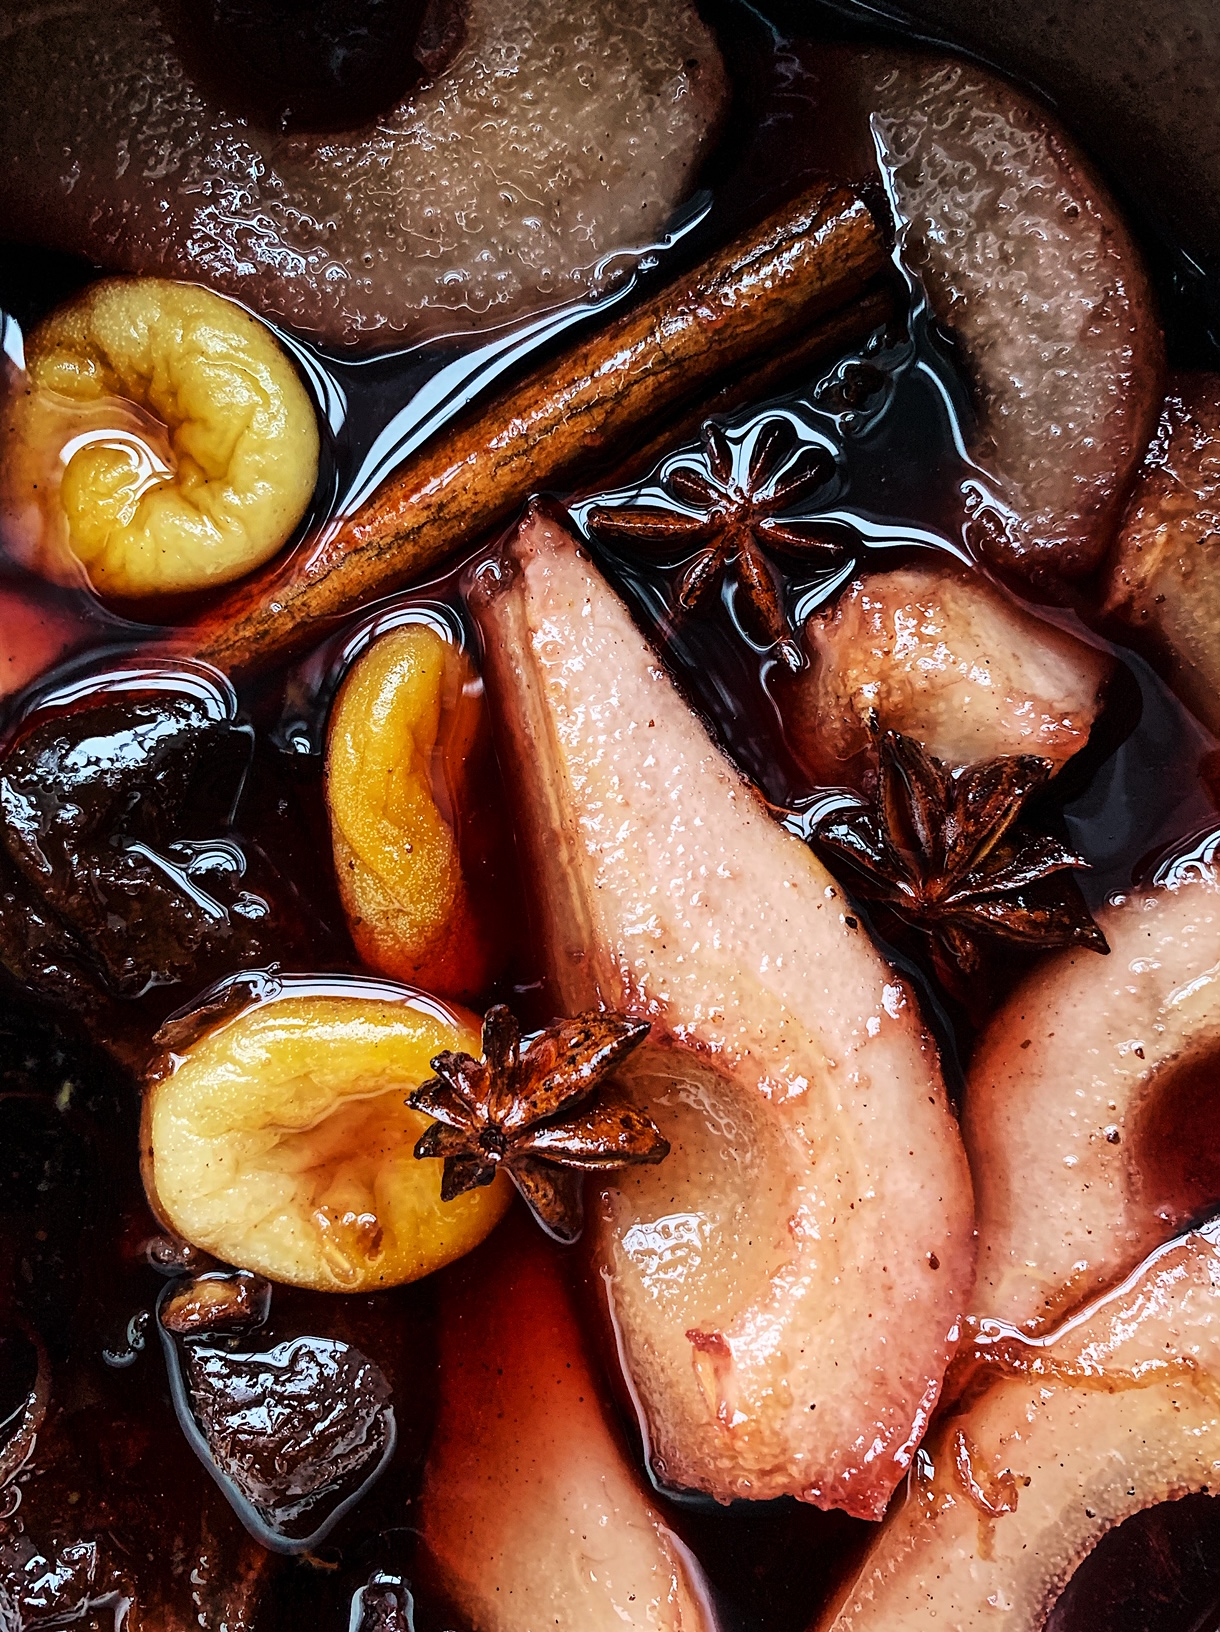 Pears, star anise, prunes and apricot compote